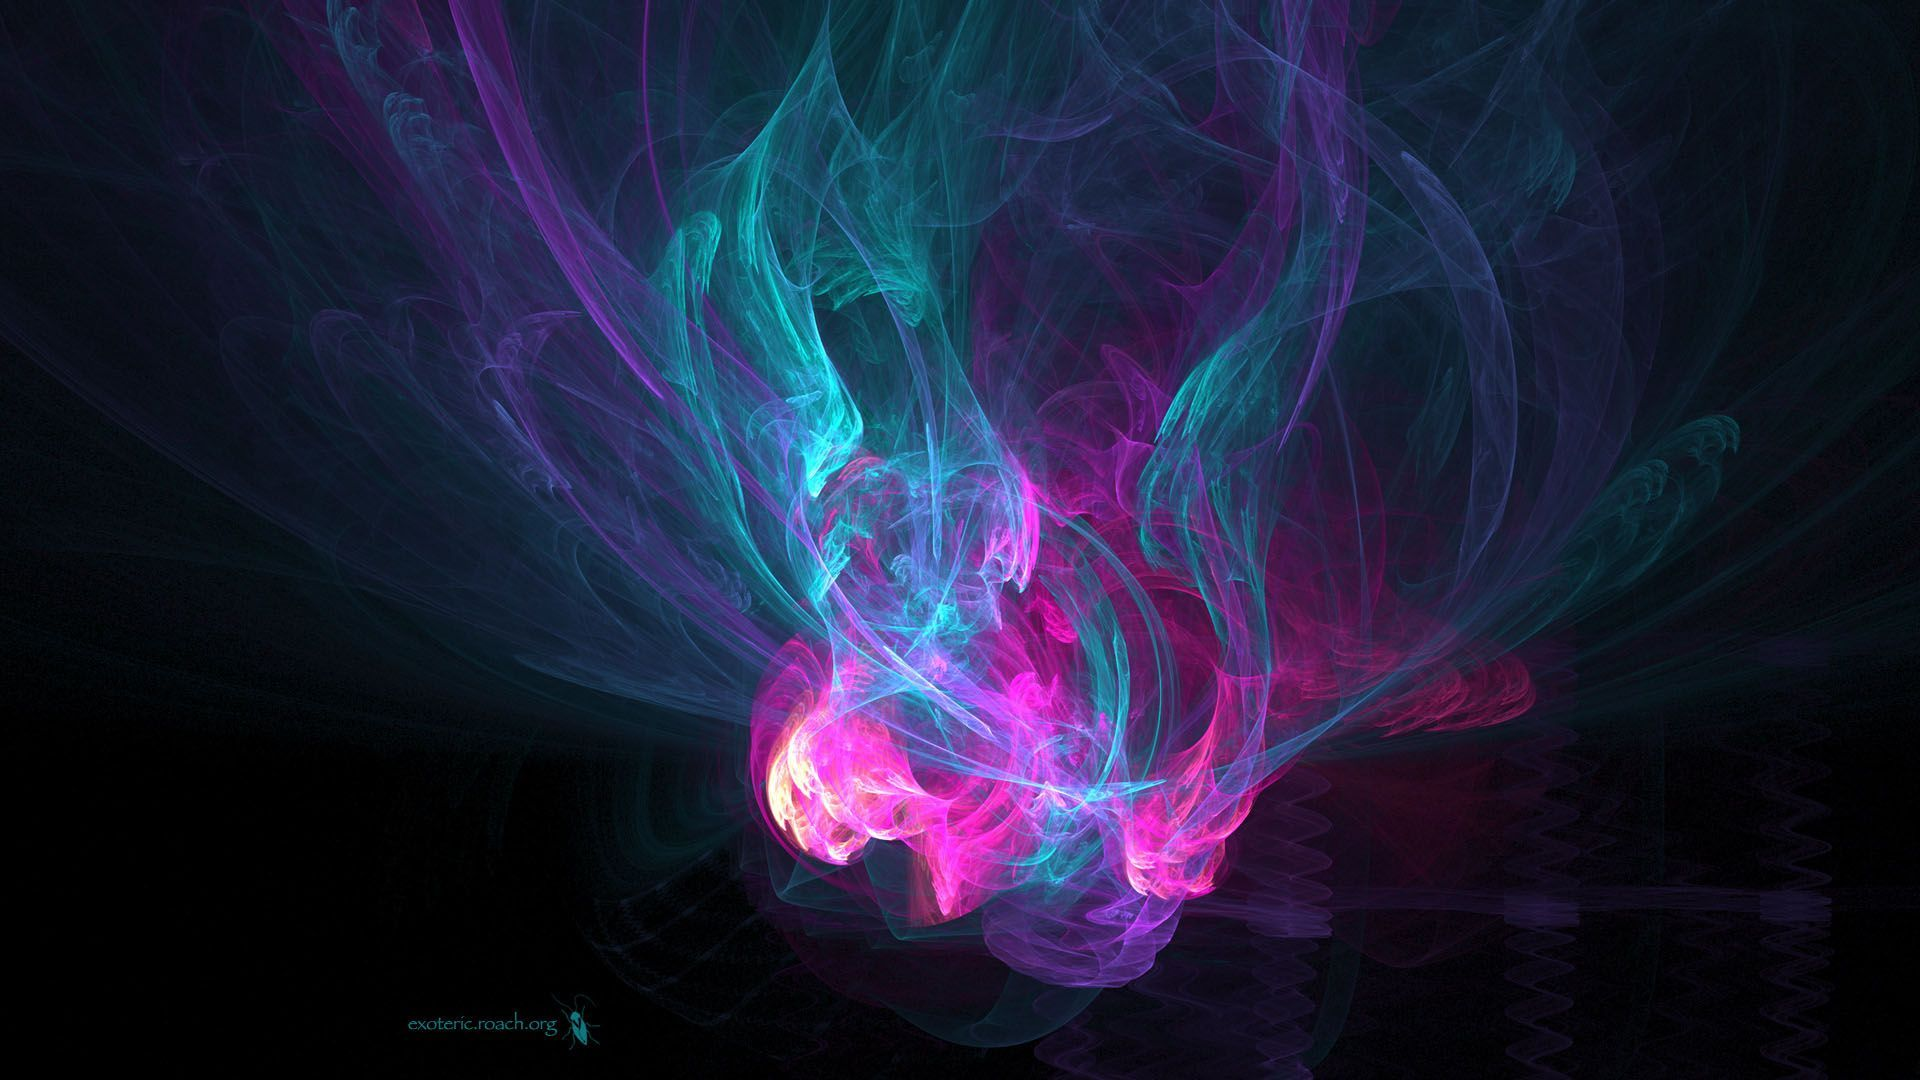 Exoteric Multicolor Blue and Pink HD Wallpaper » FullHDWpp